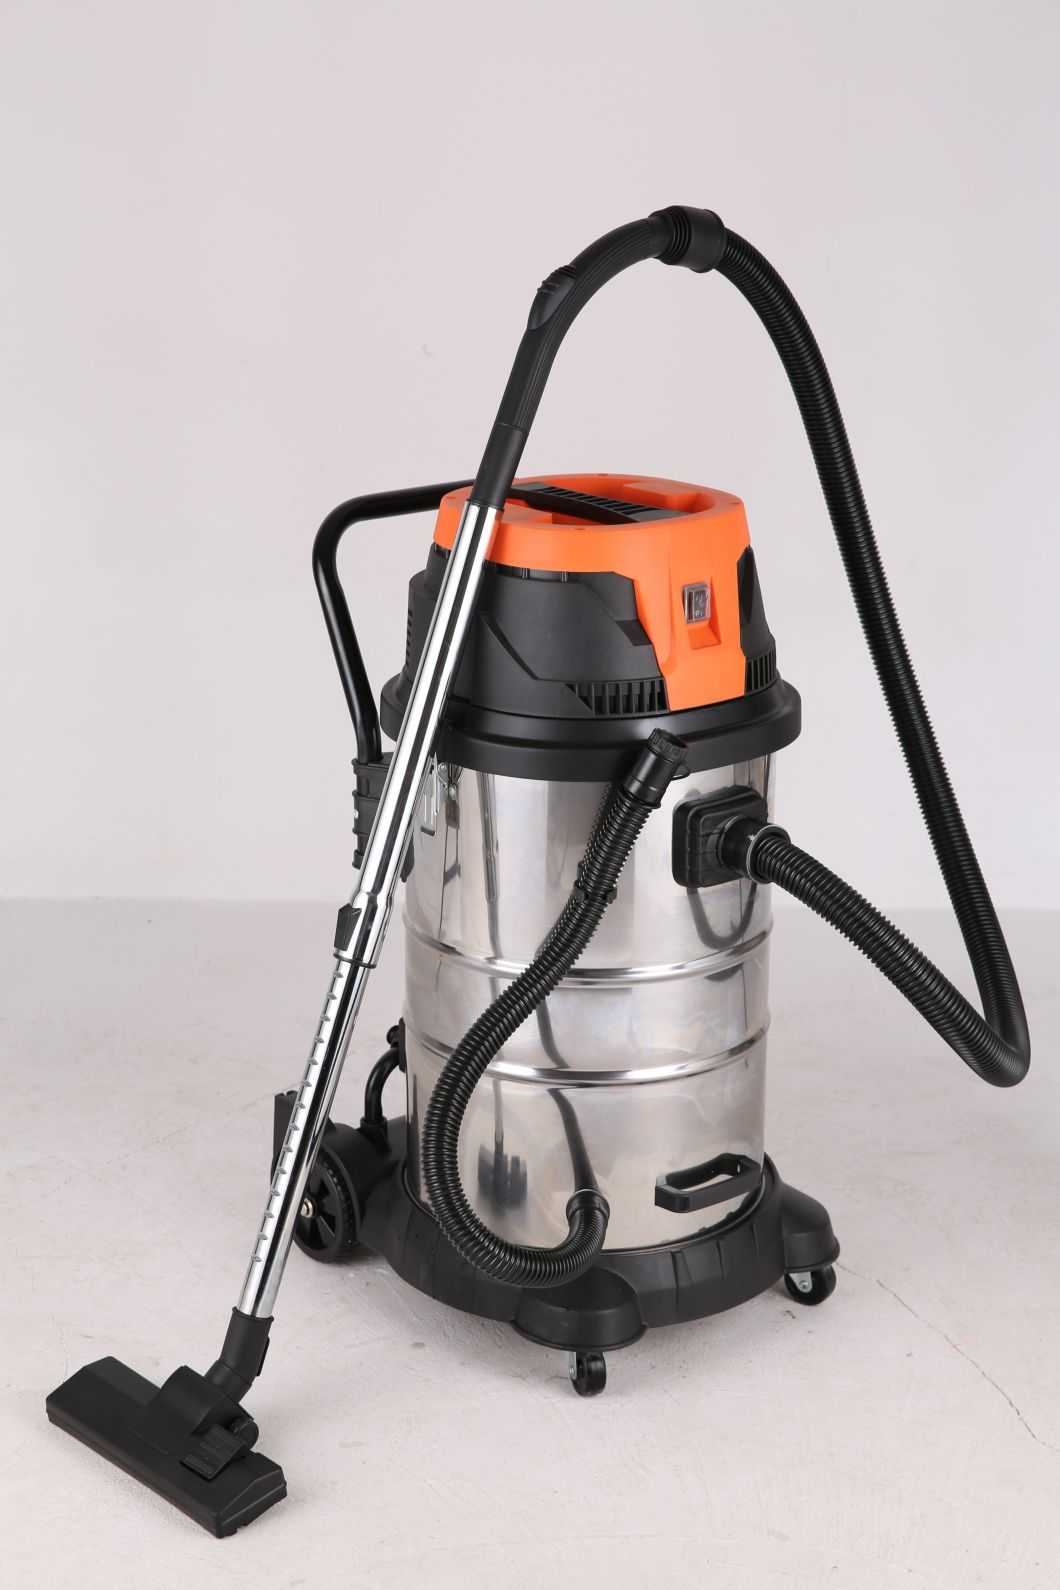 Industrial Wet&Dry Vacuum Cleaner Mwd181 50L Stainless Steel High Power